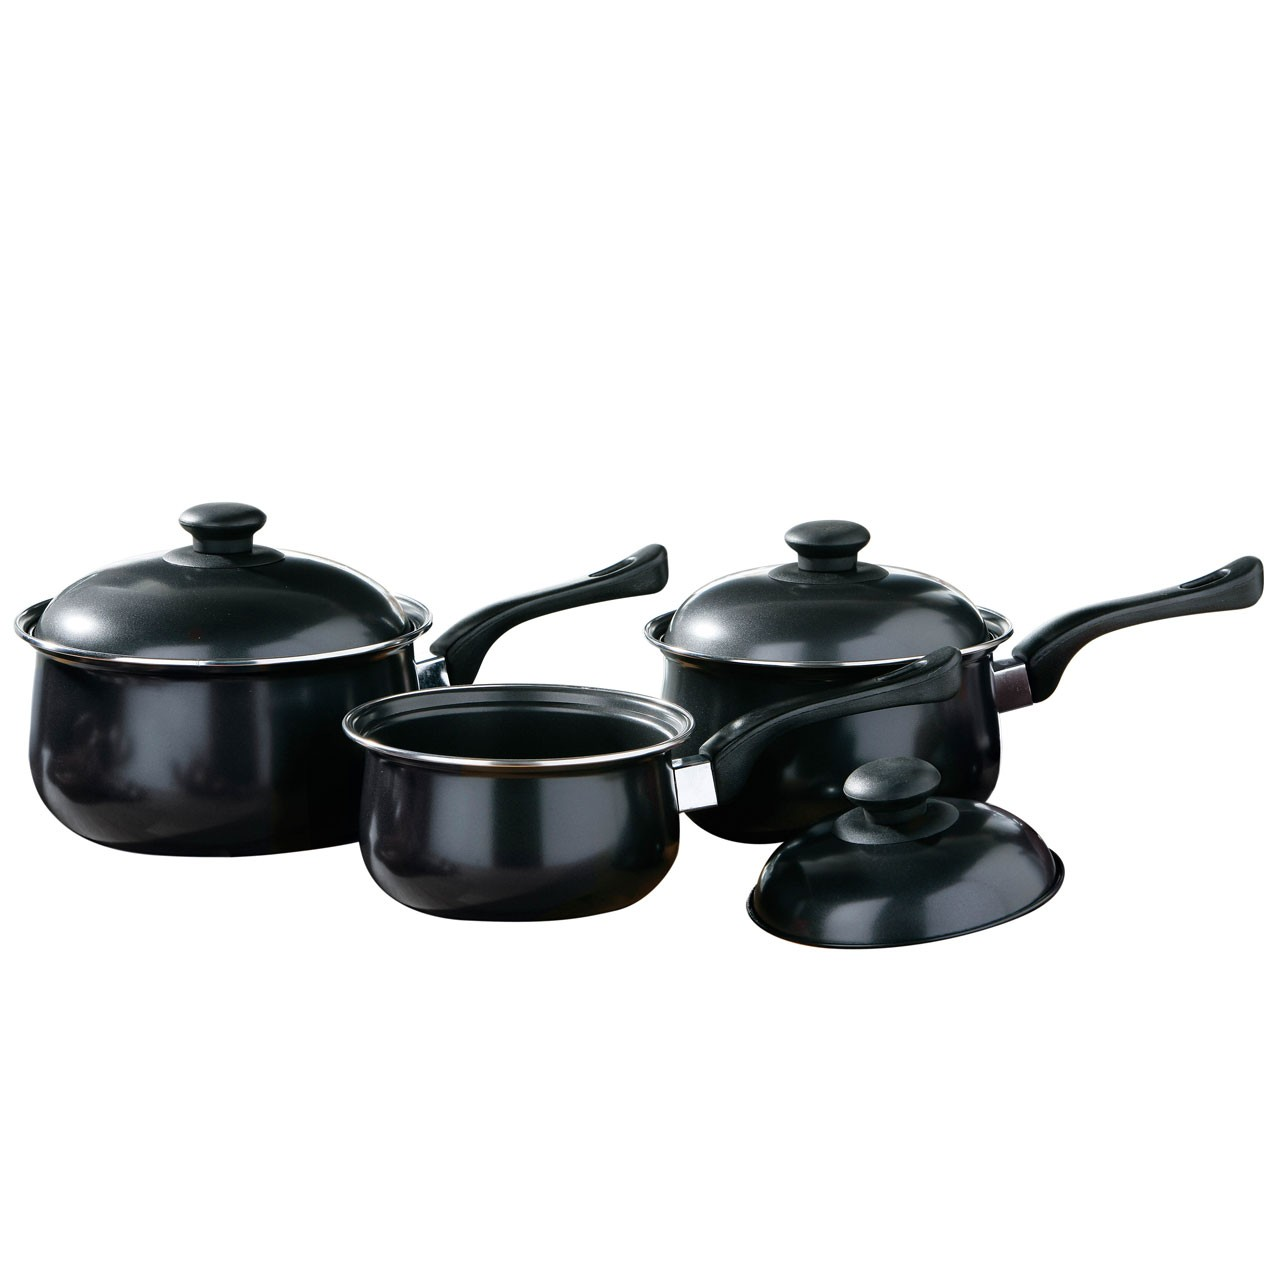 3pc Black Belly Pan Set, Non-Stick Carbon Steel, Bakelite Handle